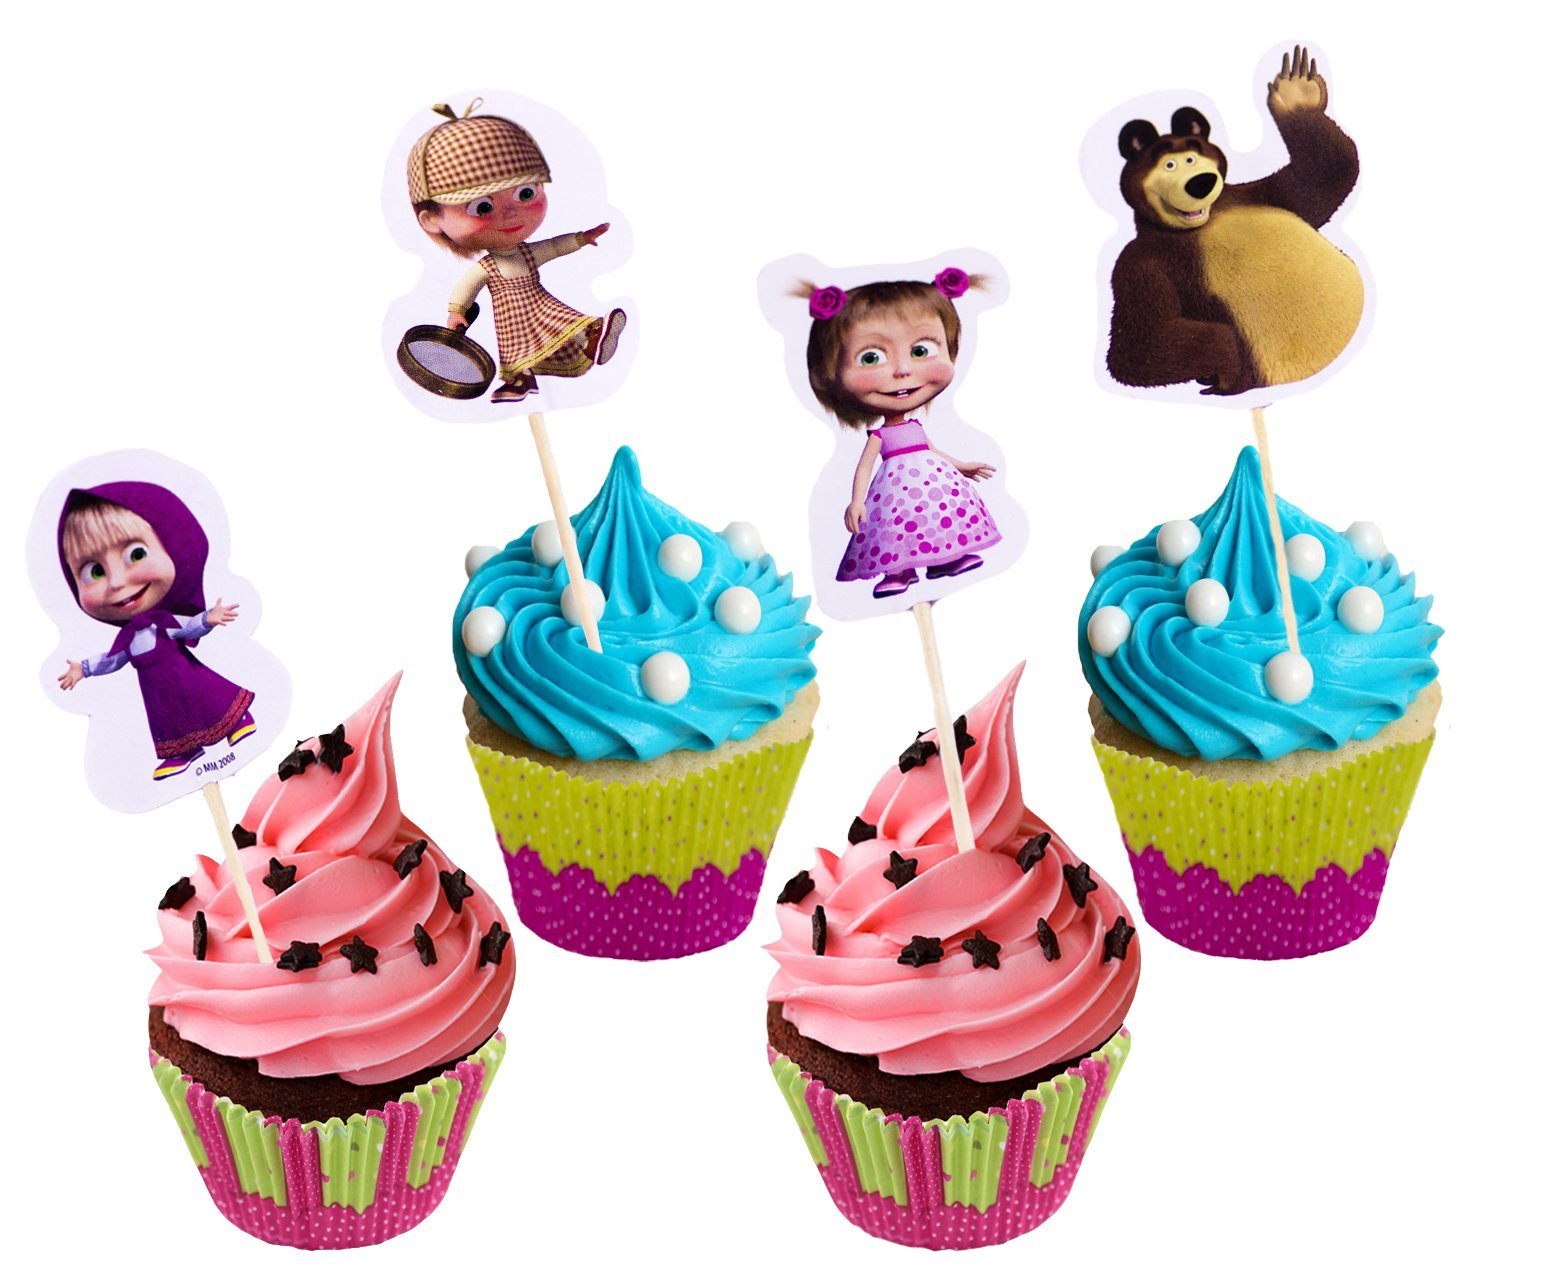 Set of Bright Printed Backing Cups 24 pcs and 24 Picks Topper Food Decoration Masha and the Bear for Cakes Cupcakes Muffins Must Have Accessories for the Party and Birthday Masha y el Oso para niños by Masha and the Bear (Image #2)